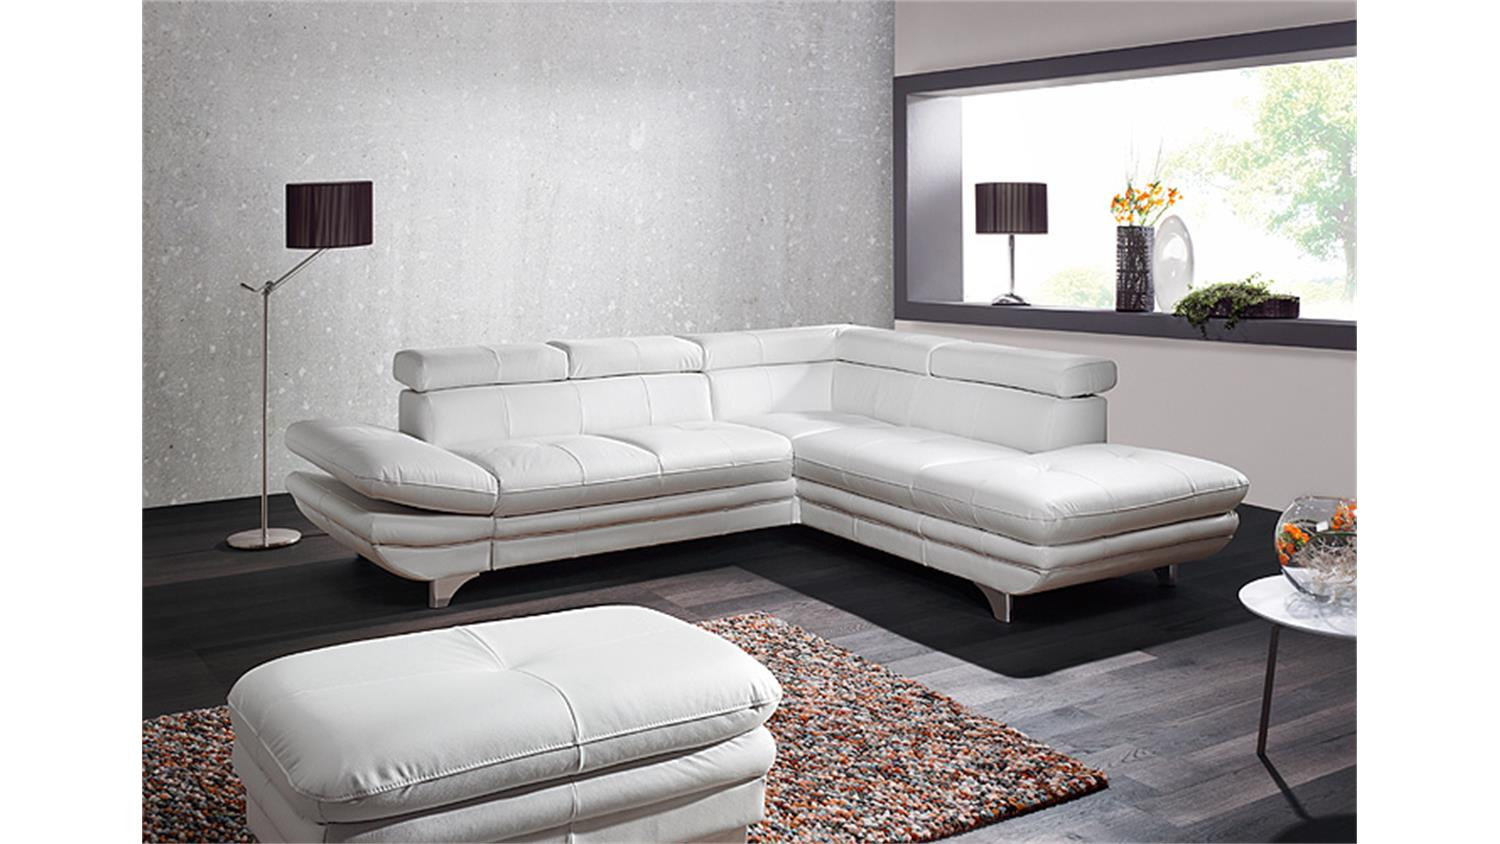 Ecksofa Bettfunktion Ecksofa Enterprise Sofa Wohnlandschaft Weiß Bettfunktion